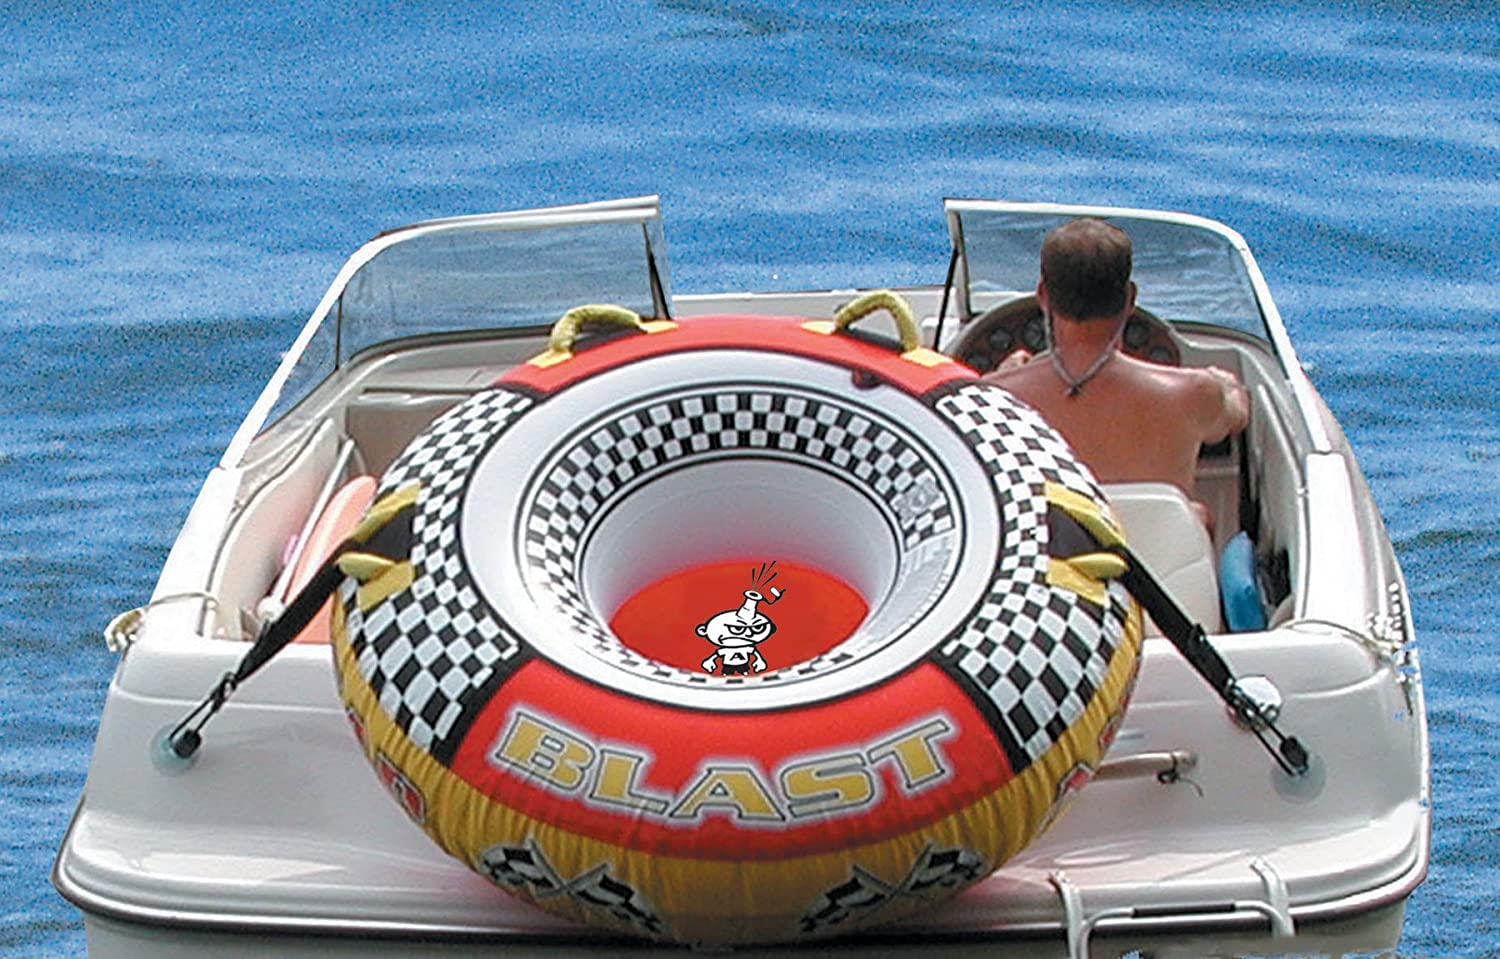 Airhead Tube Keeper Waterskiing Towables Sports Boat Tow Harness Outdoors